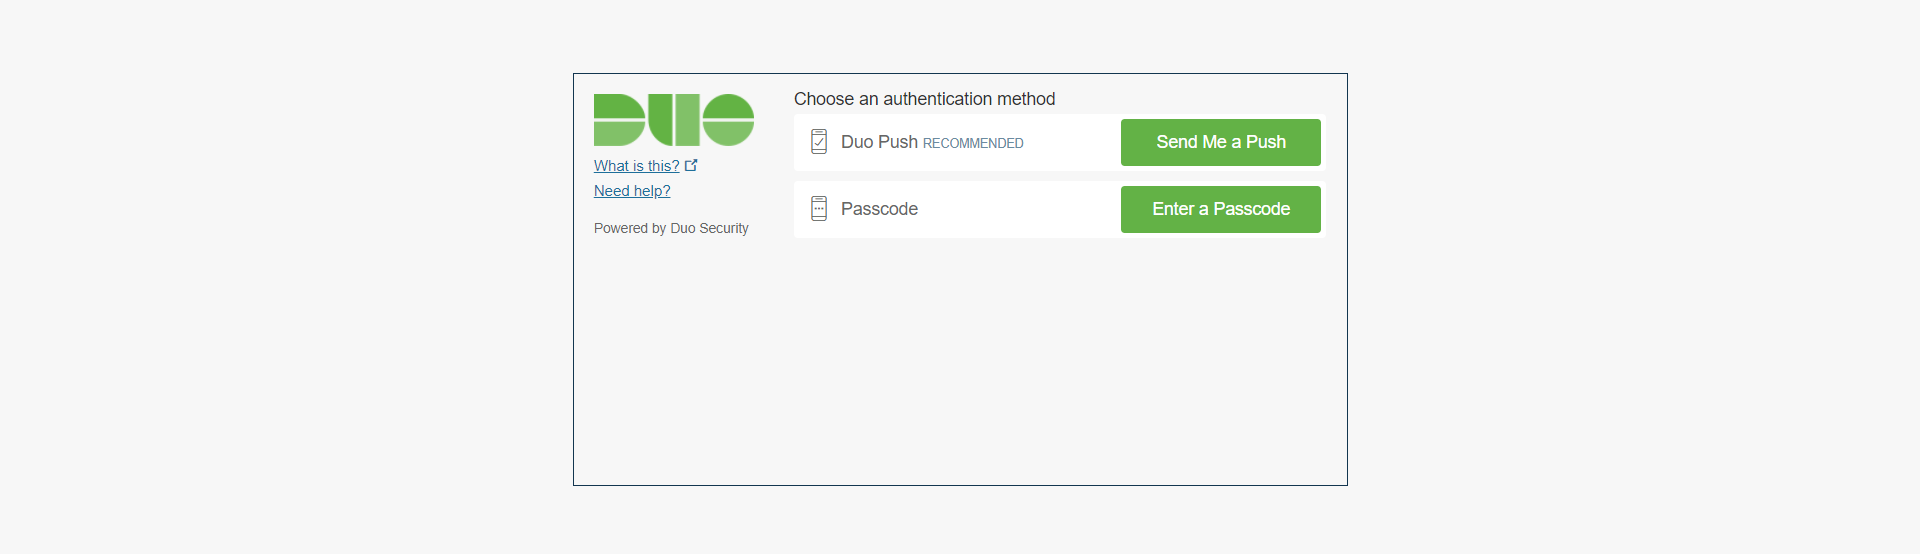 Settings up two-factor authentication - Duo security